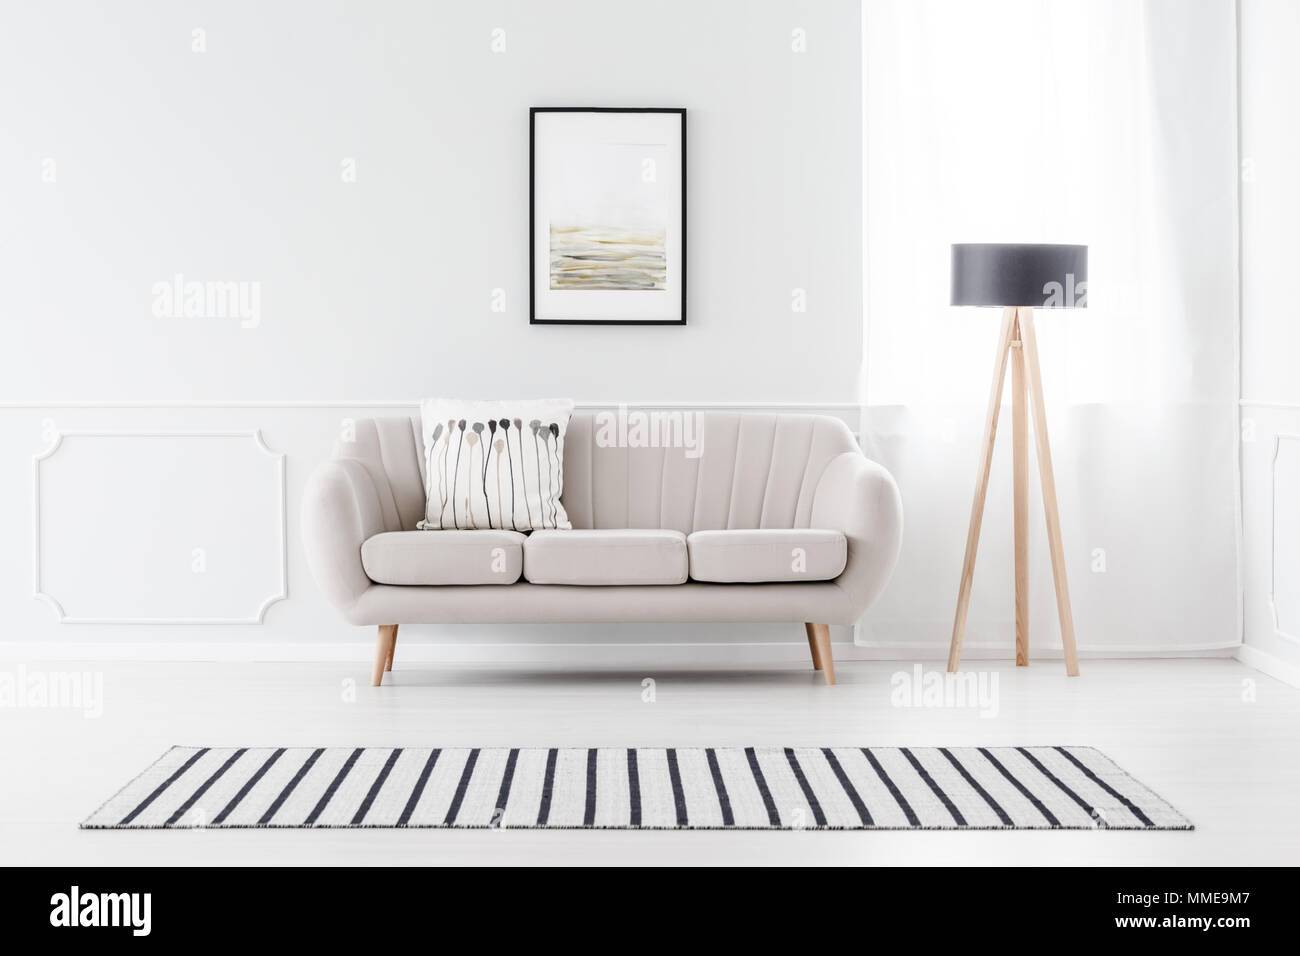 Beige couch standing against white wall with molding and watercolor ...